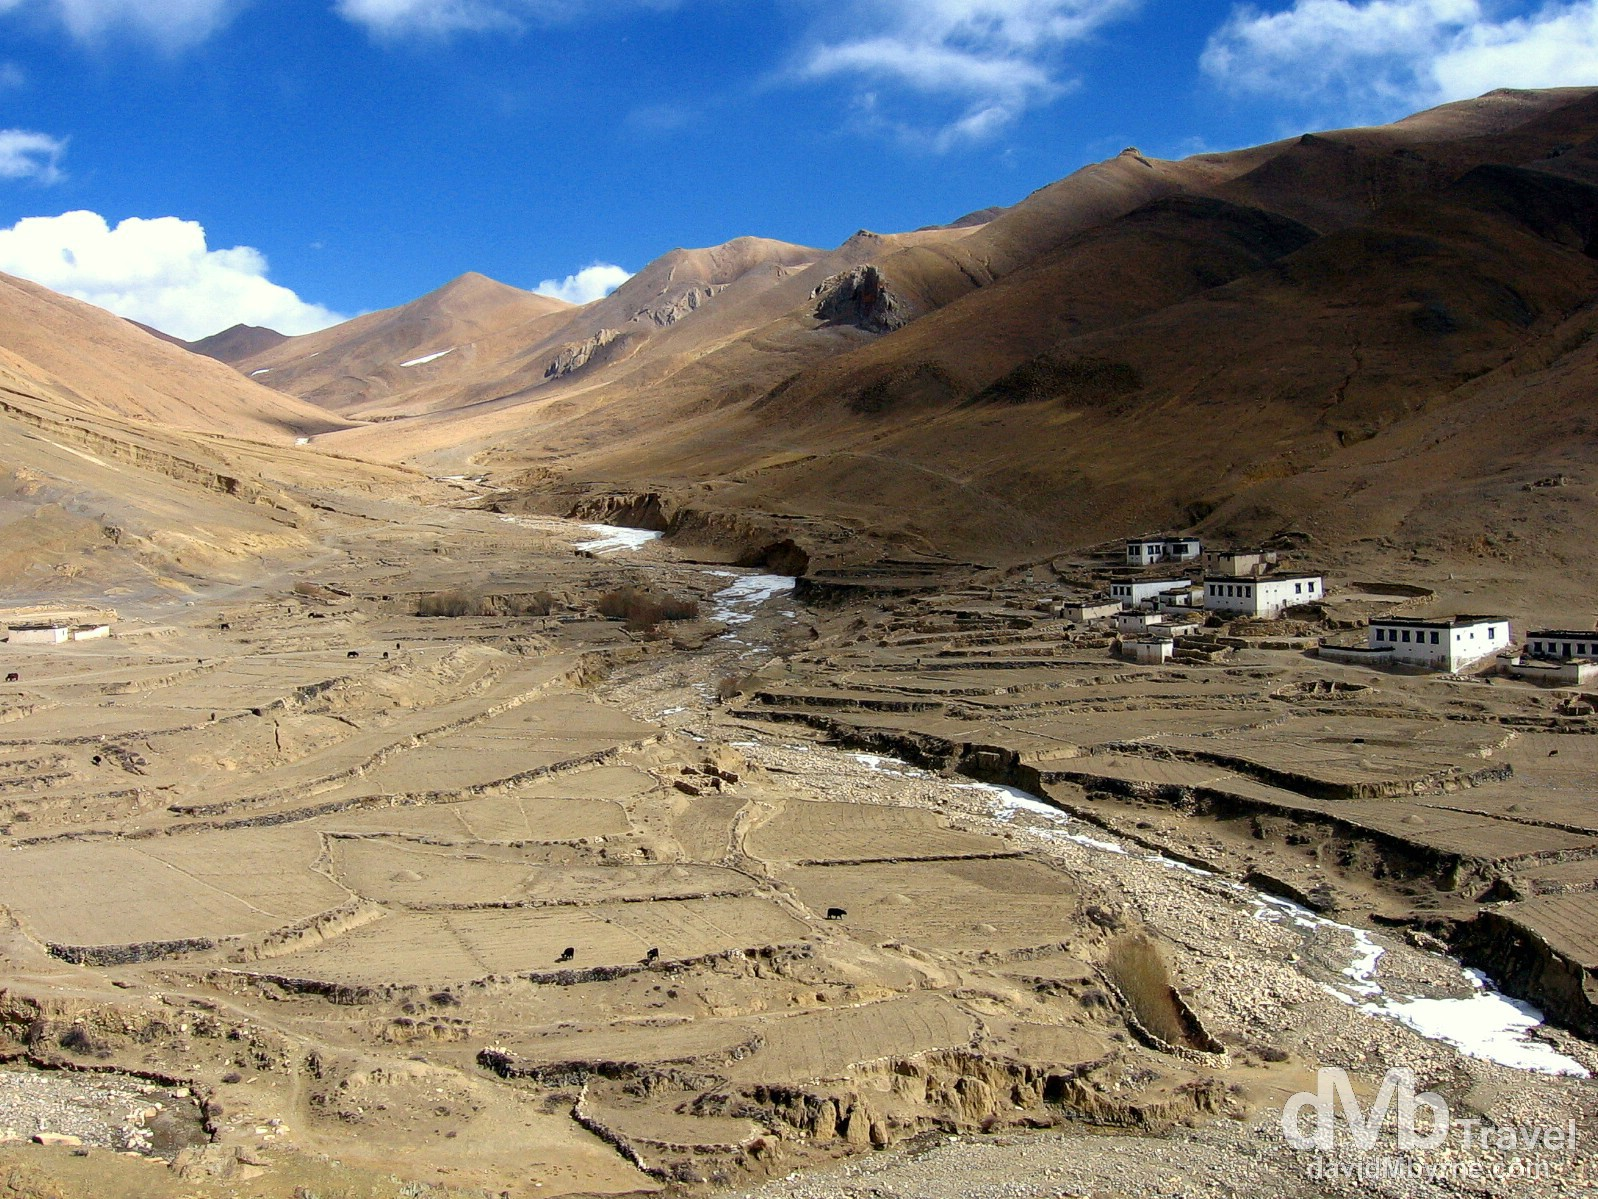 Yurgya Hamlet on the bumpy road to Rongbuk Valley, Everest region, Tibet. March 2nd, 2008.